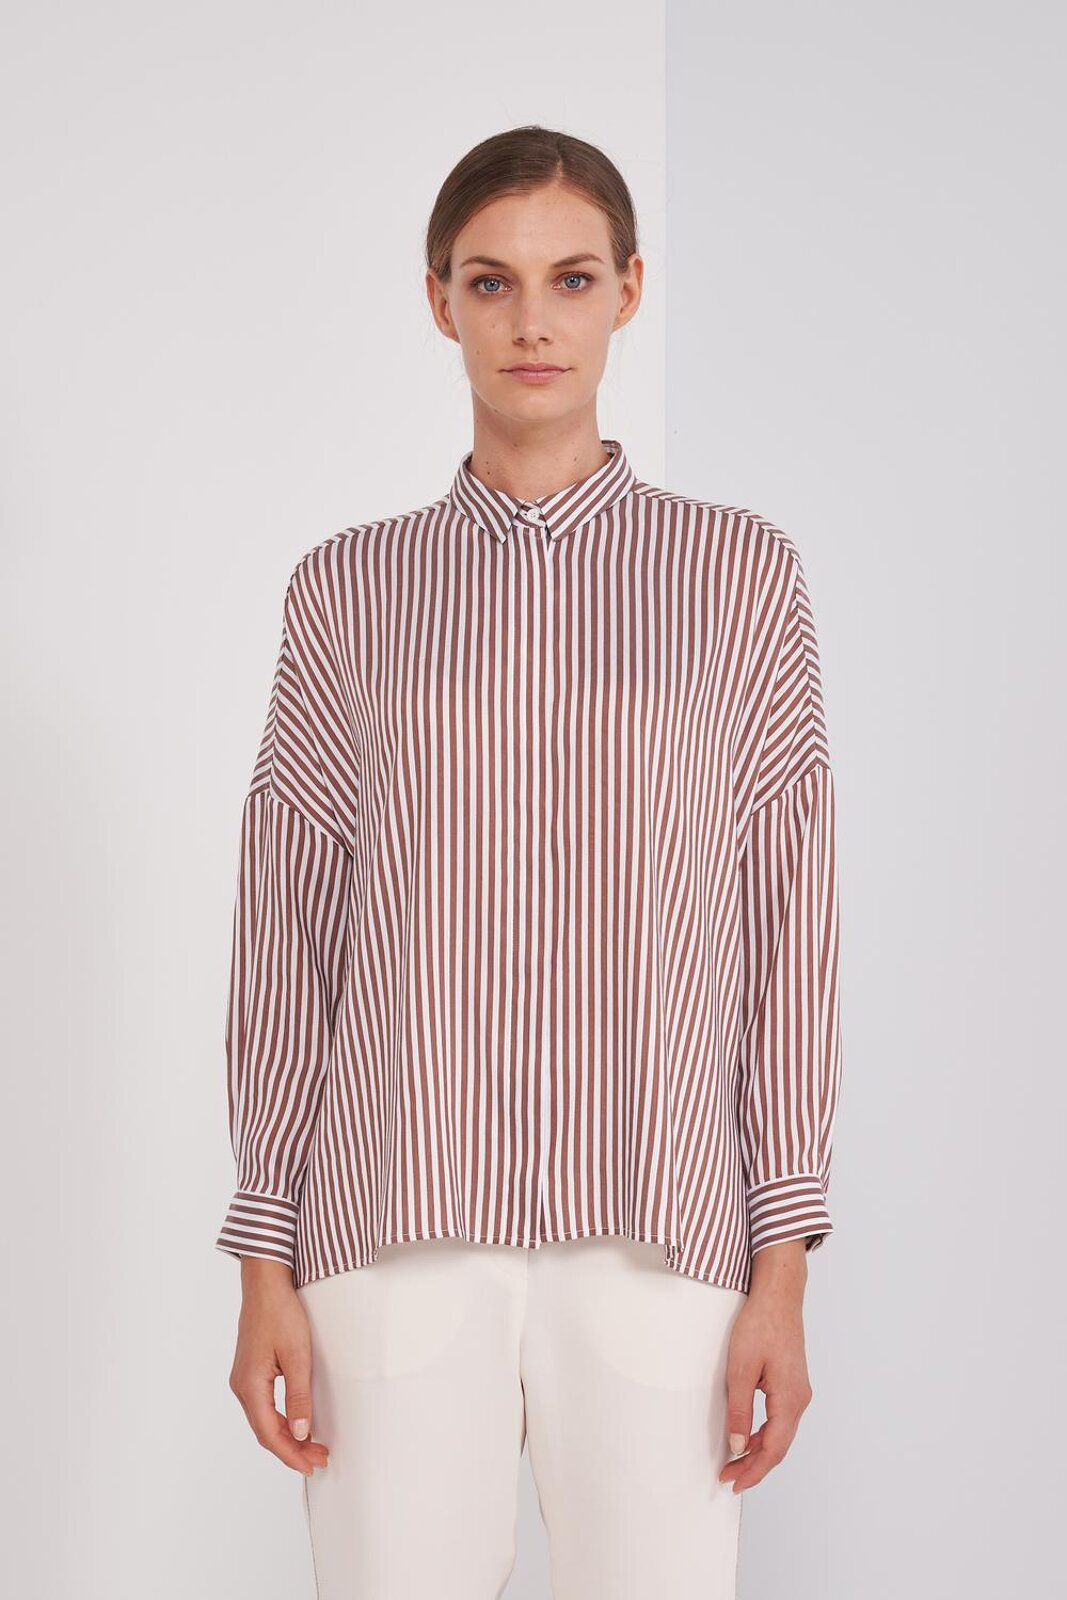 Shirt In Fluid Viscose Mixed Silk Ruled With Long Sleeve. Small Collar, Front Button Closure. Wide fit. - Peserico